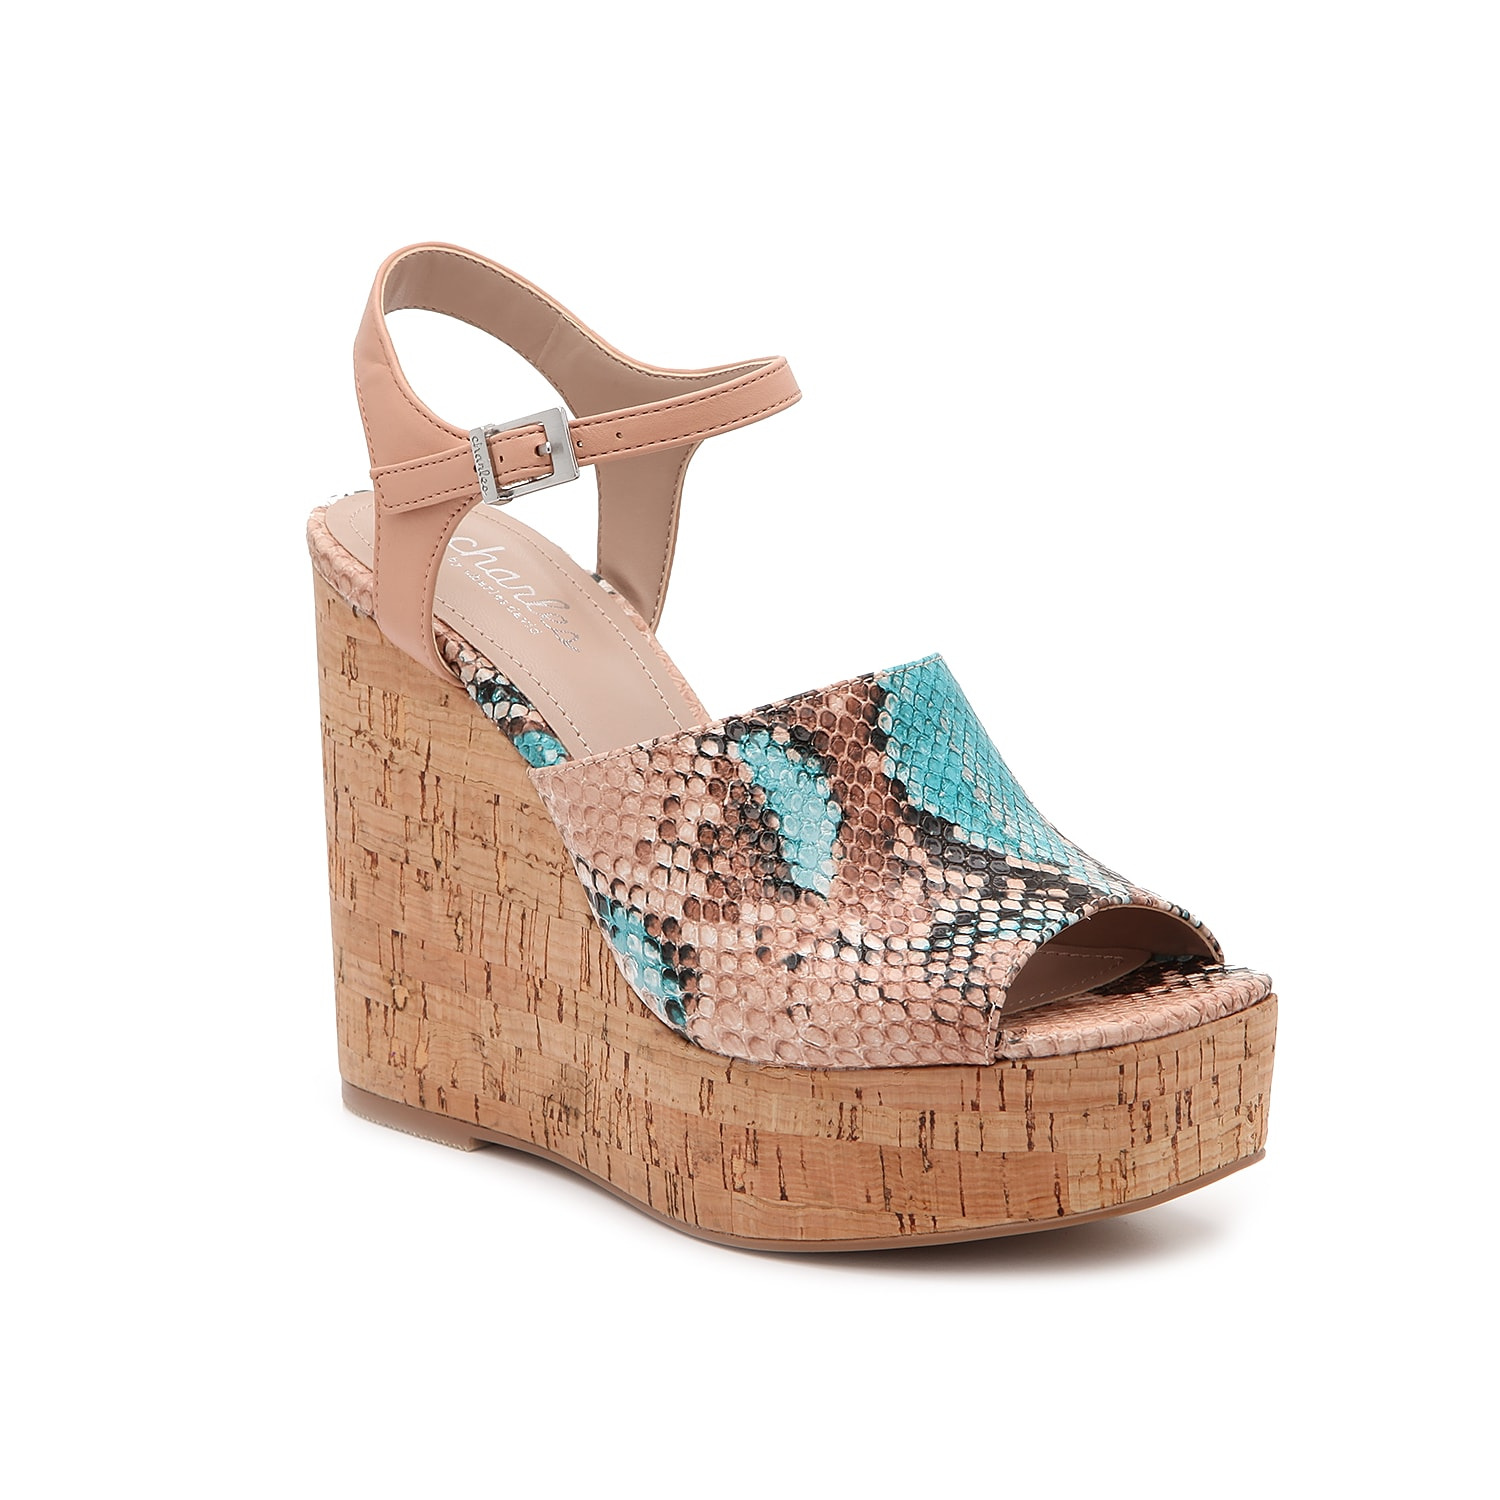 The Dory sandal from Charles by Charles David is a can\\\'t-miss addition to your warm-weather look. These platforms feature a square toe and towering cork wedge heel for modern allure.